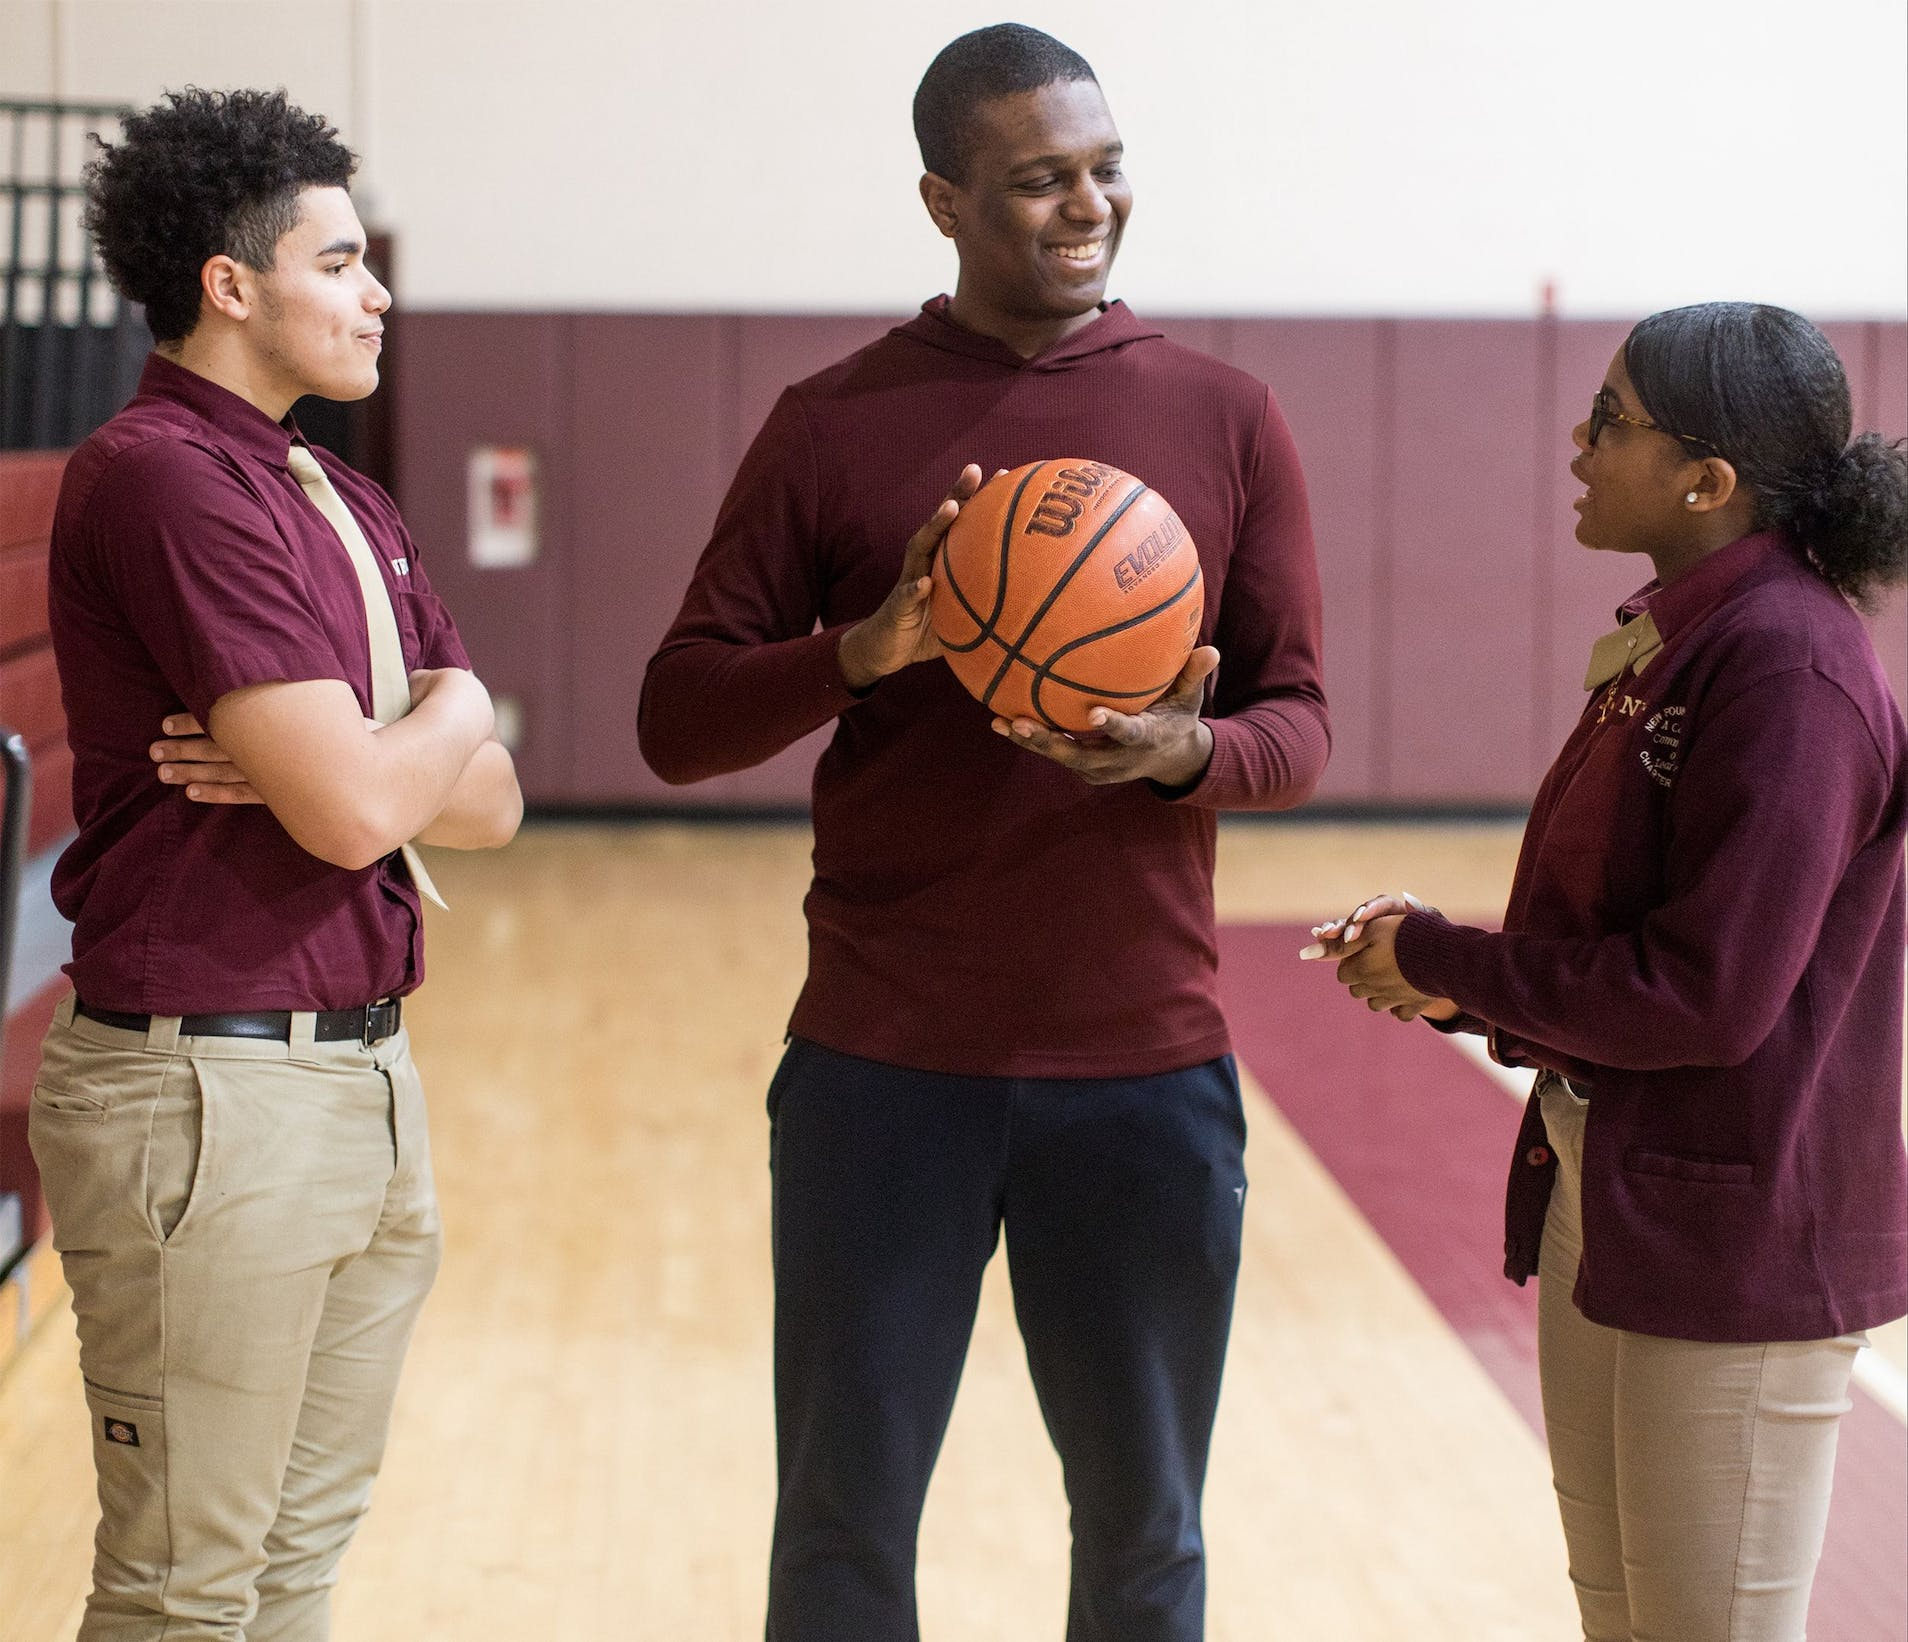 Three high school students chatting with a basketball